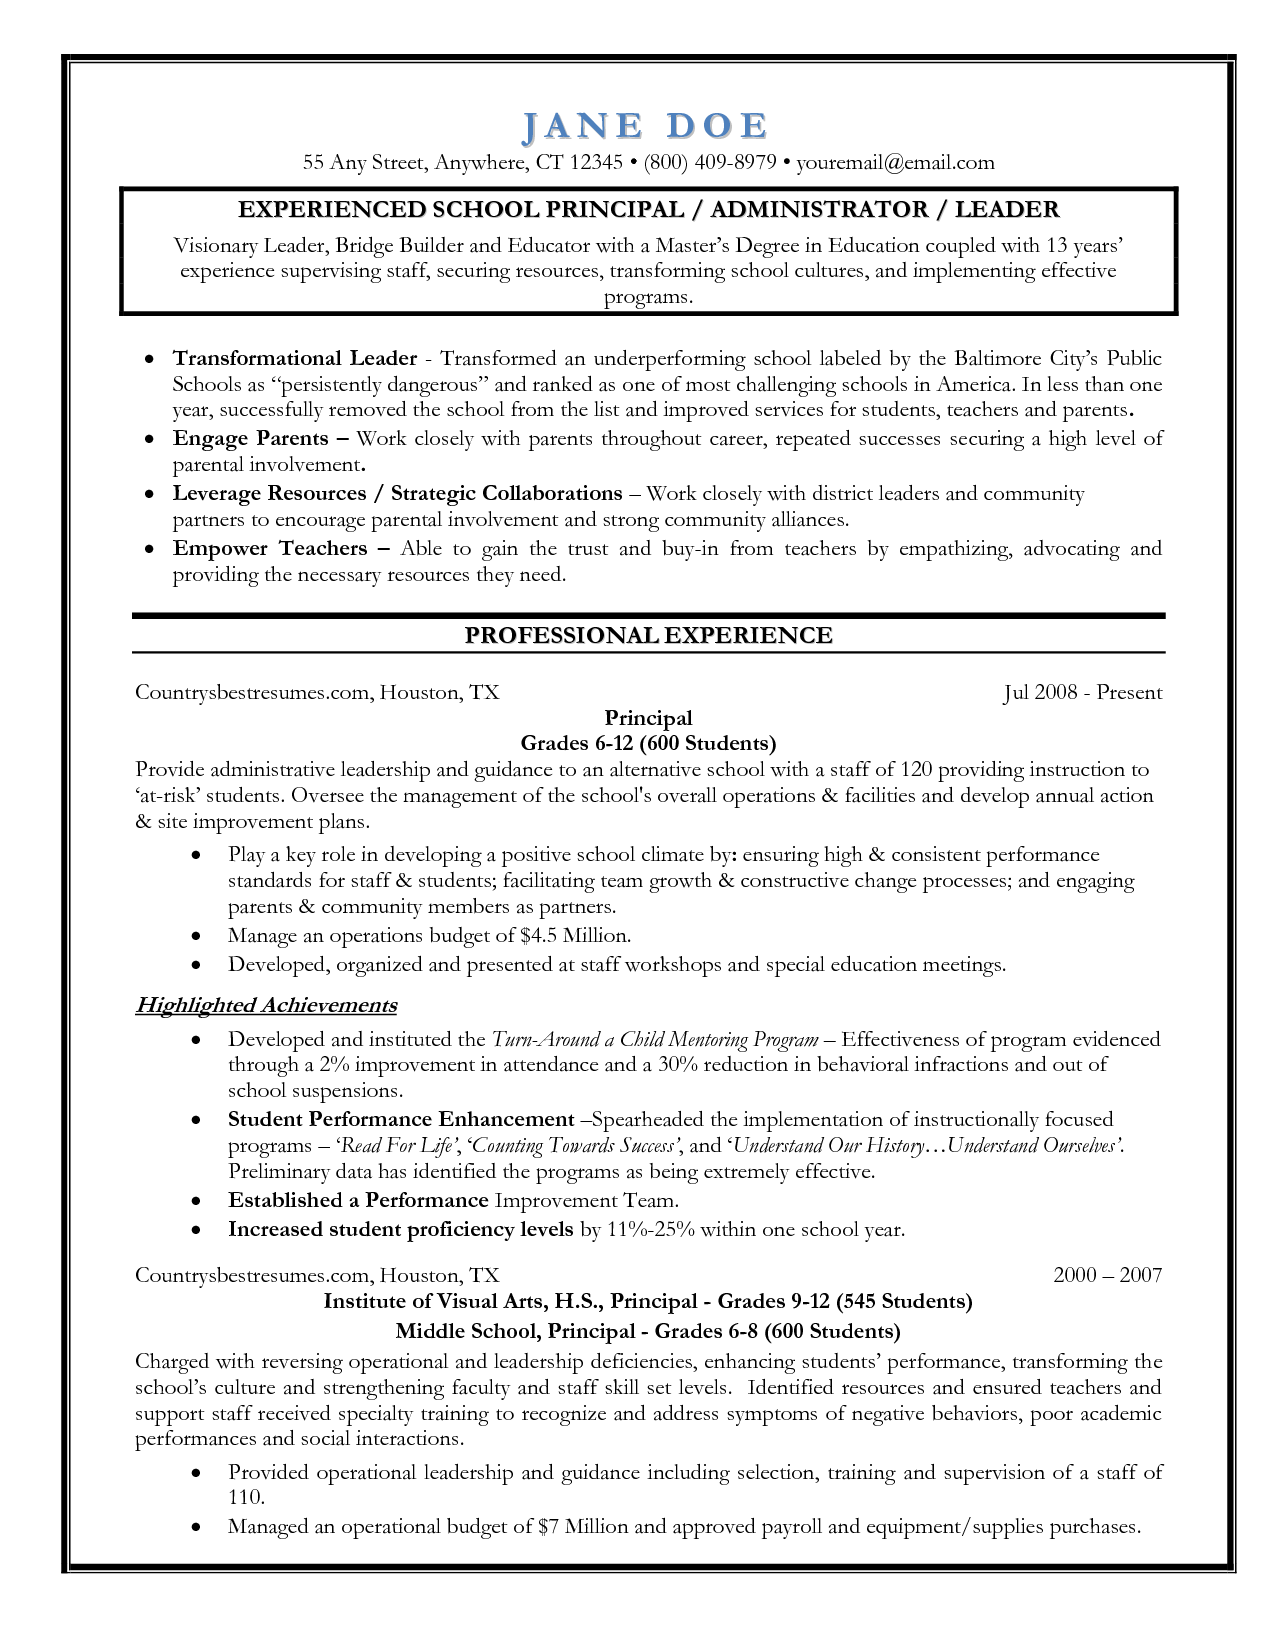 Administrator Resume Sample Custom Entrylevel Assistant Principal Resume Templates  Senior Educator .